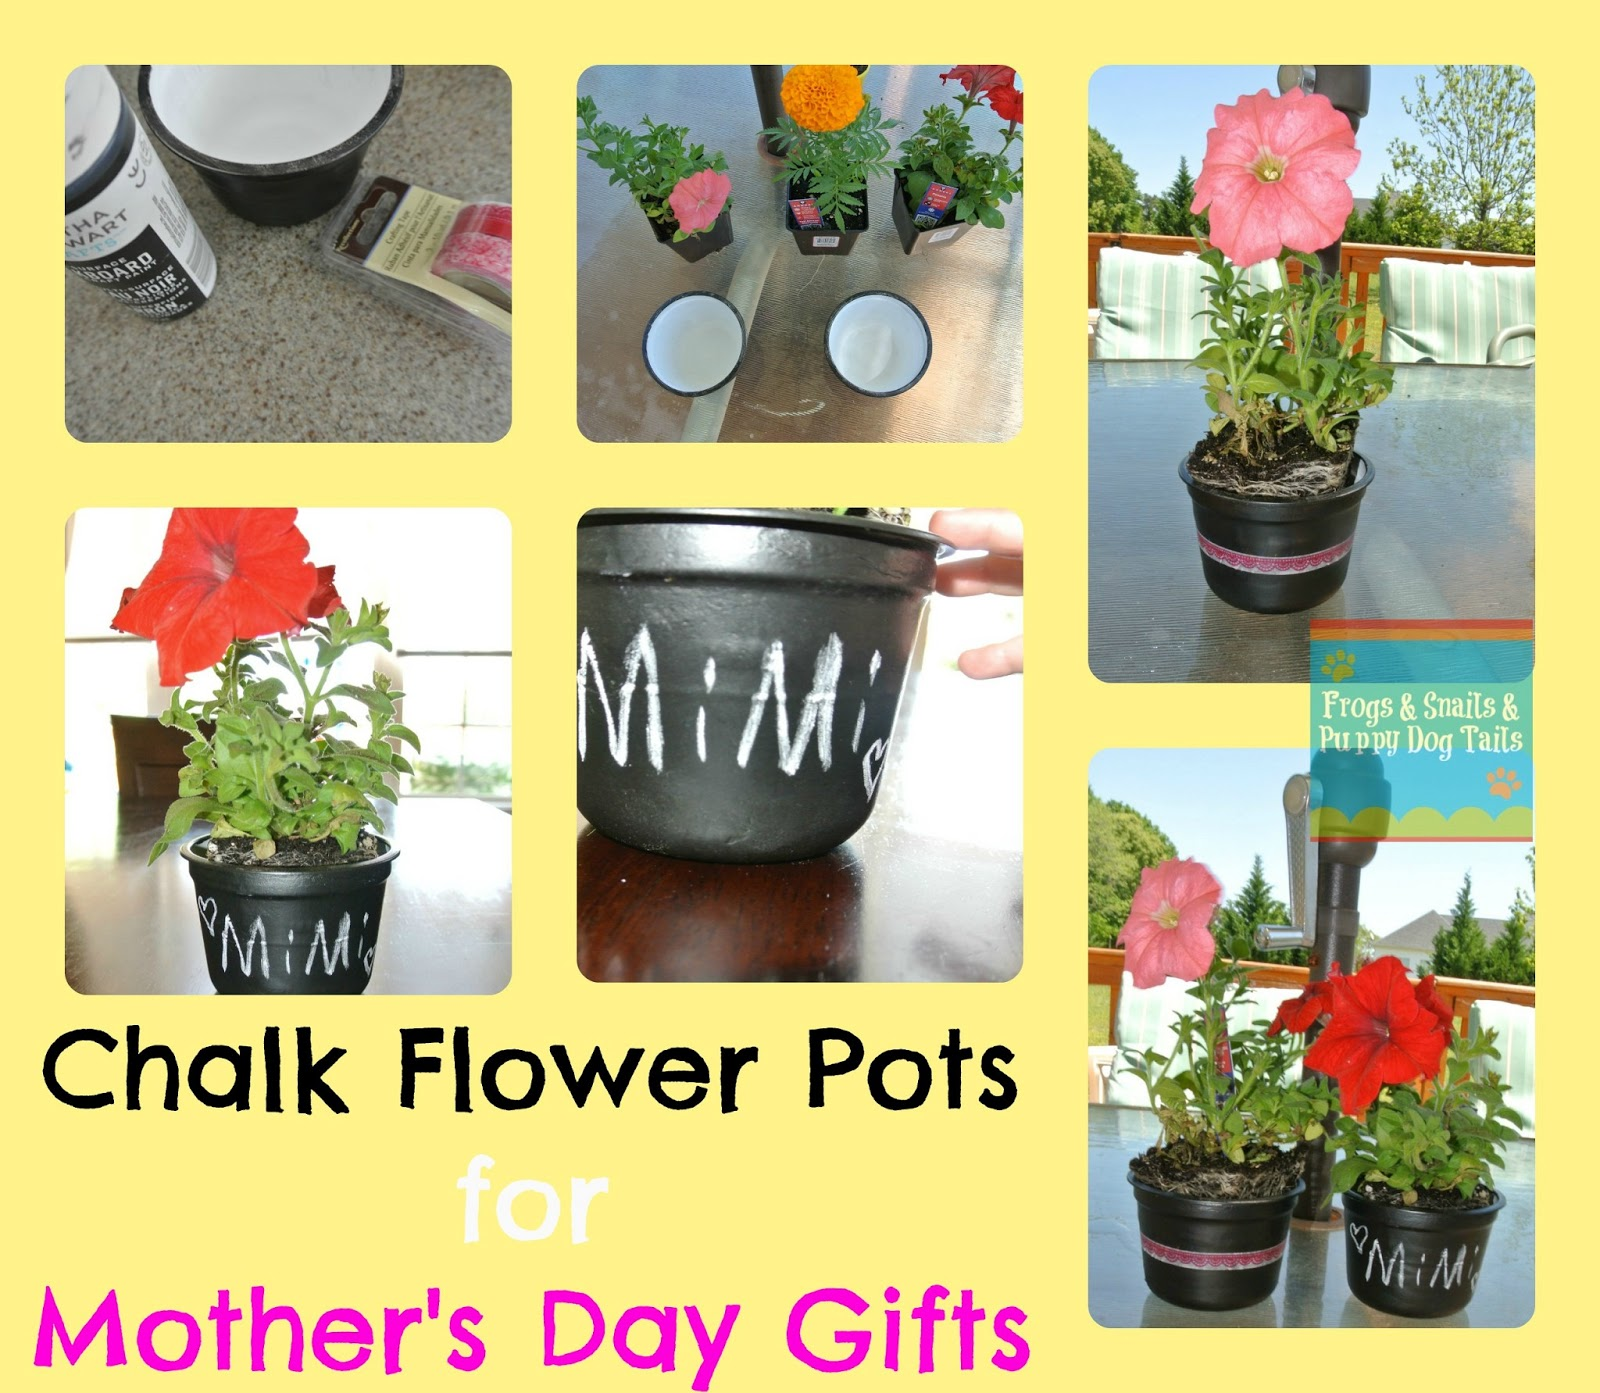 Recycled Chalk Flower Pots For Mother s Day Gifts. Recycled Chalk Flower Pots For Mother s Day Gifts   FSPDT